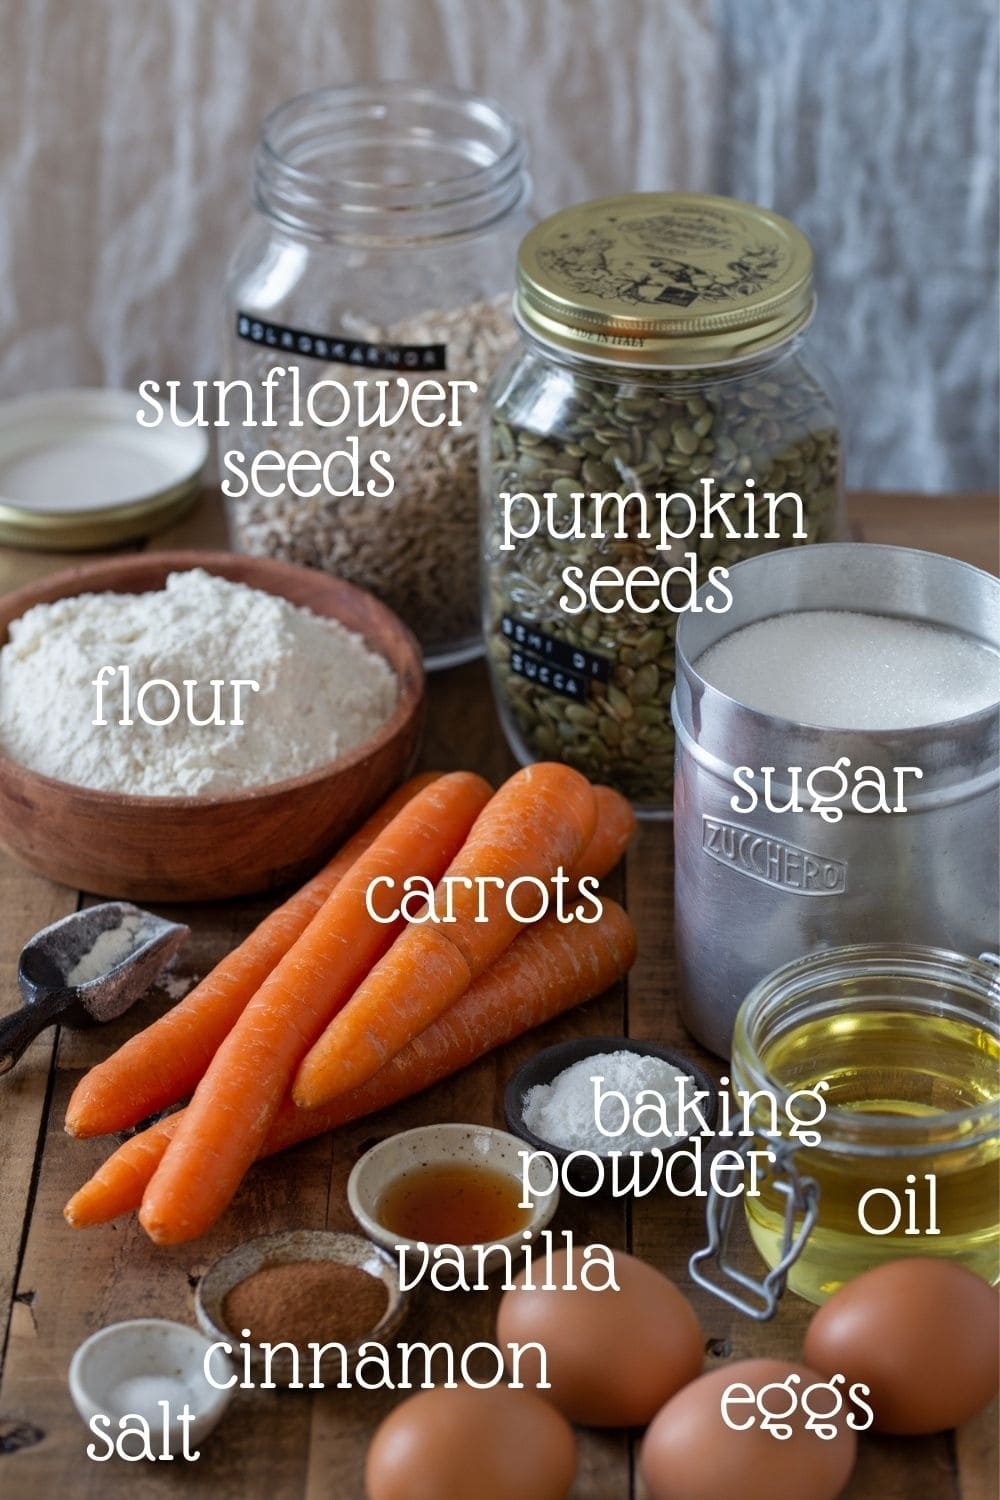 All the ingredients needed for the recipe.